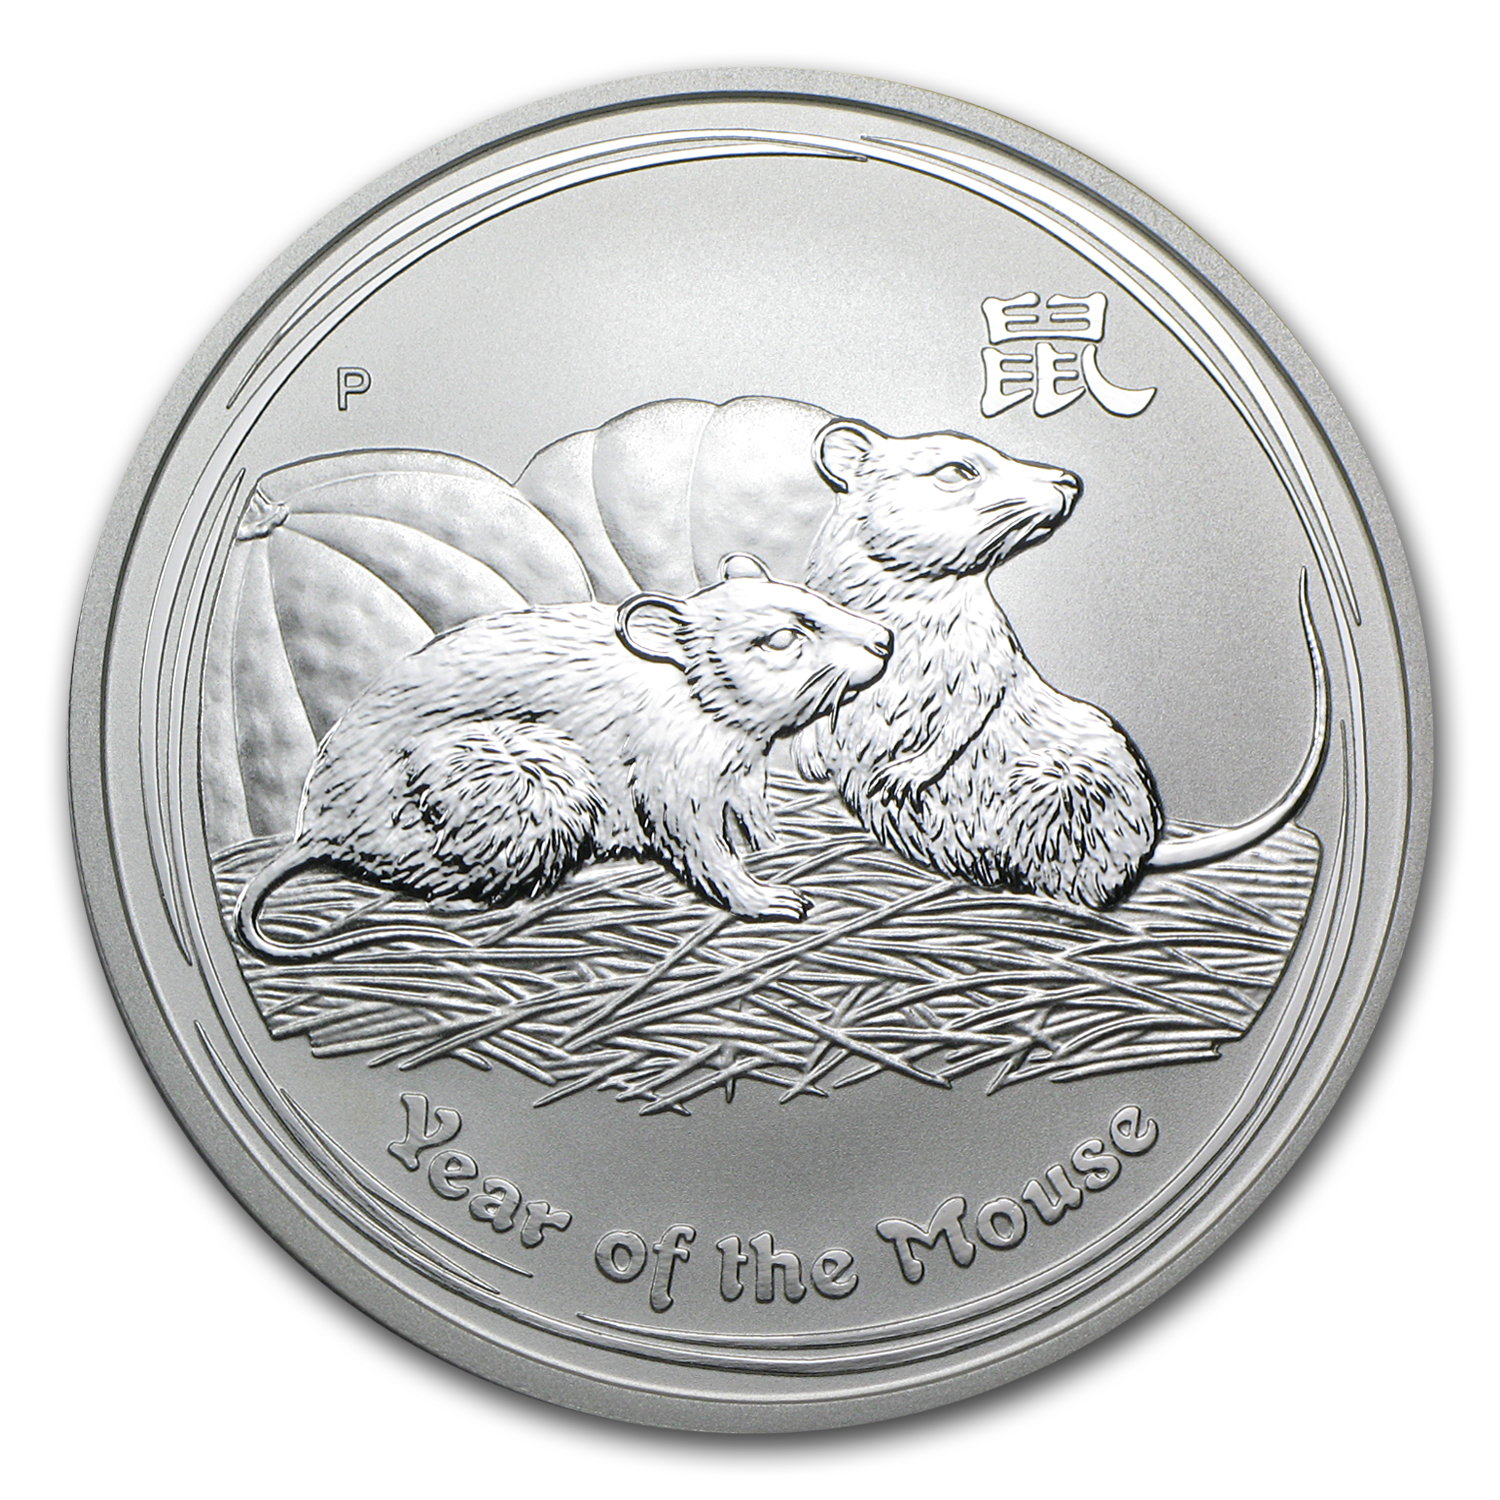 2008 1 oz Silver Year of the Mouse Coin (Series II)